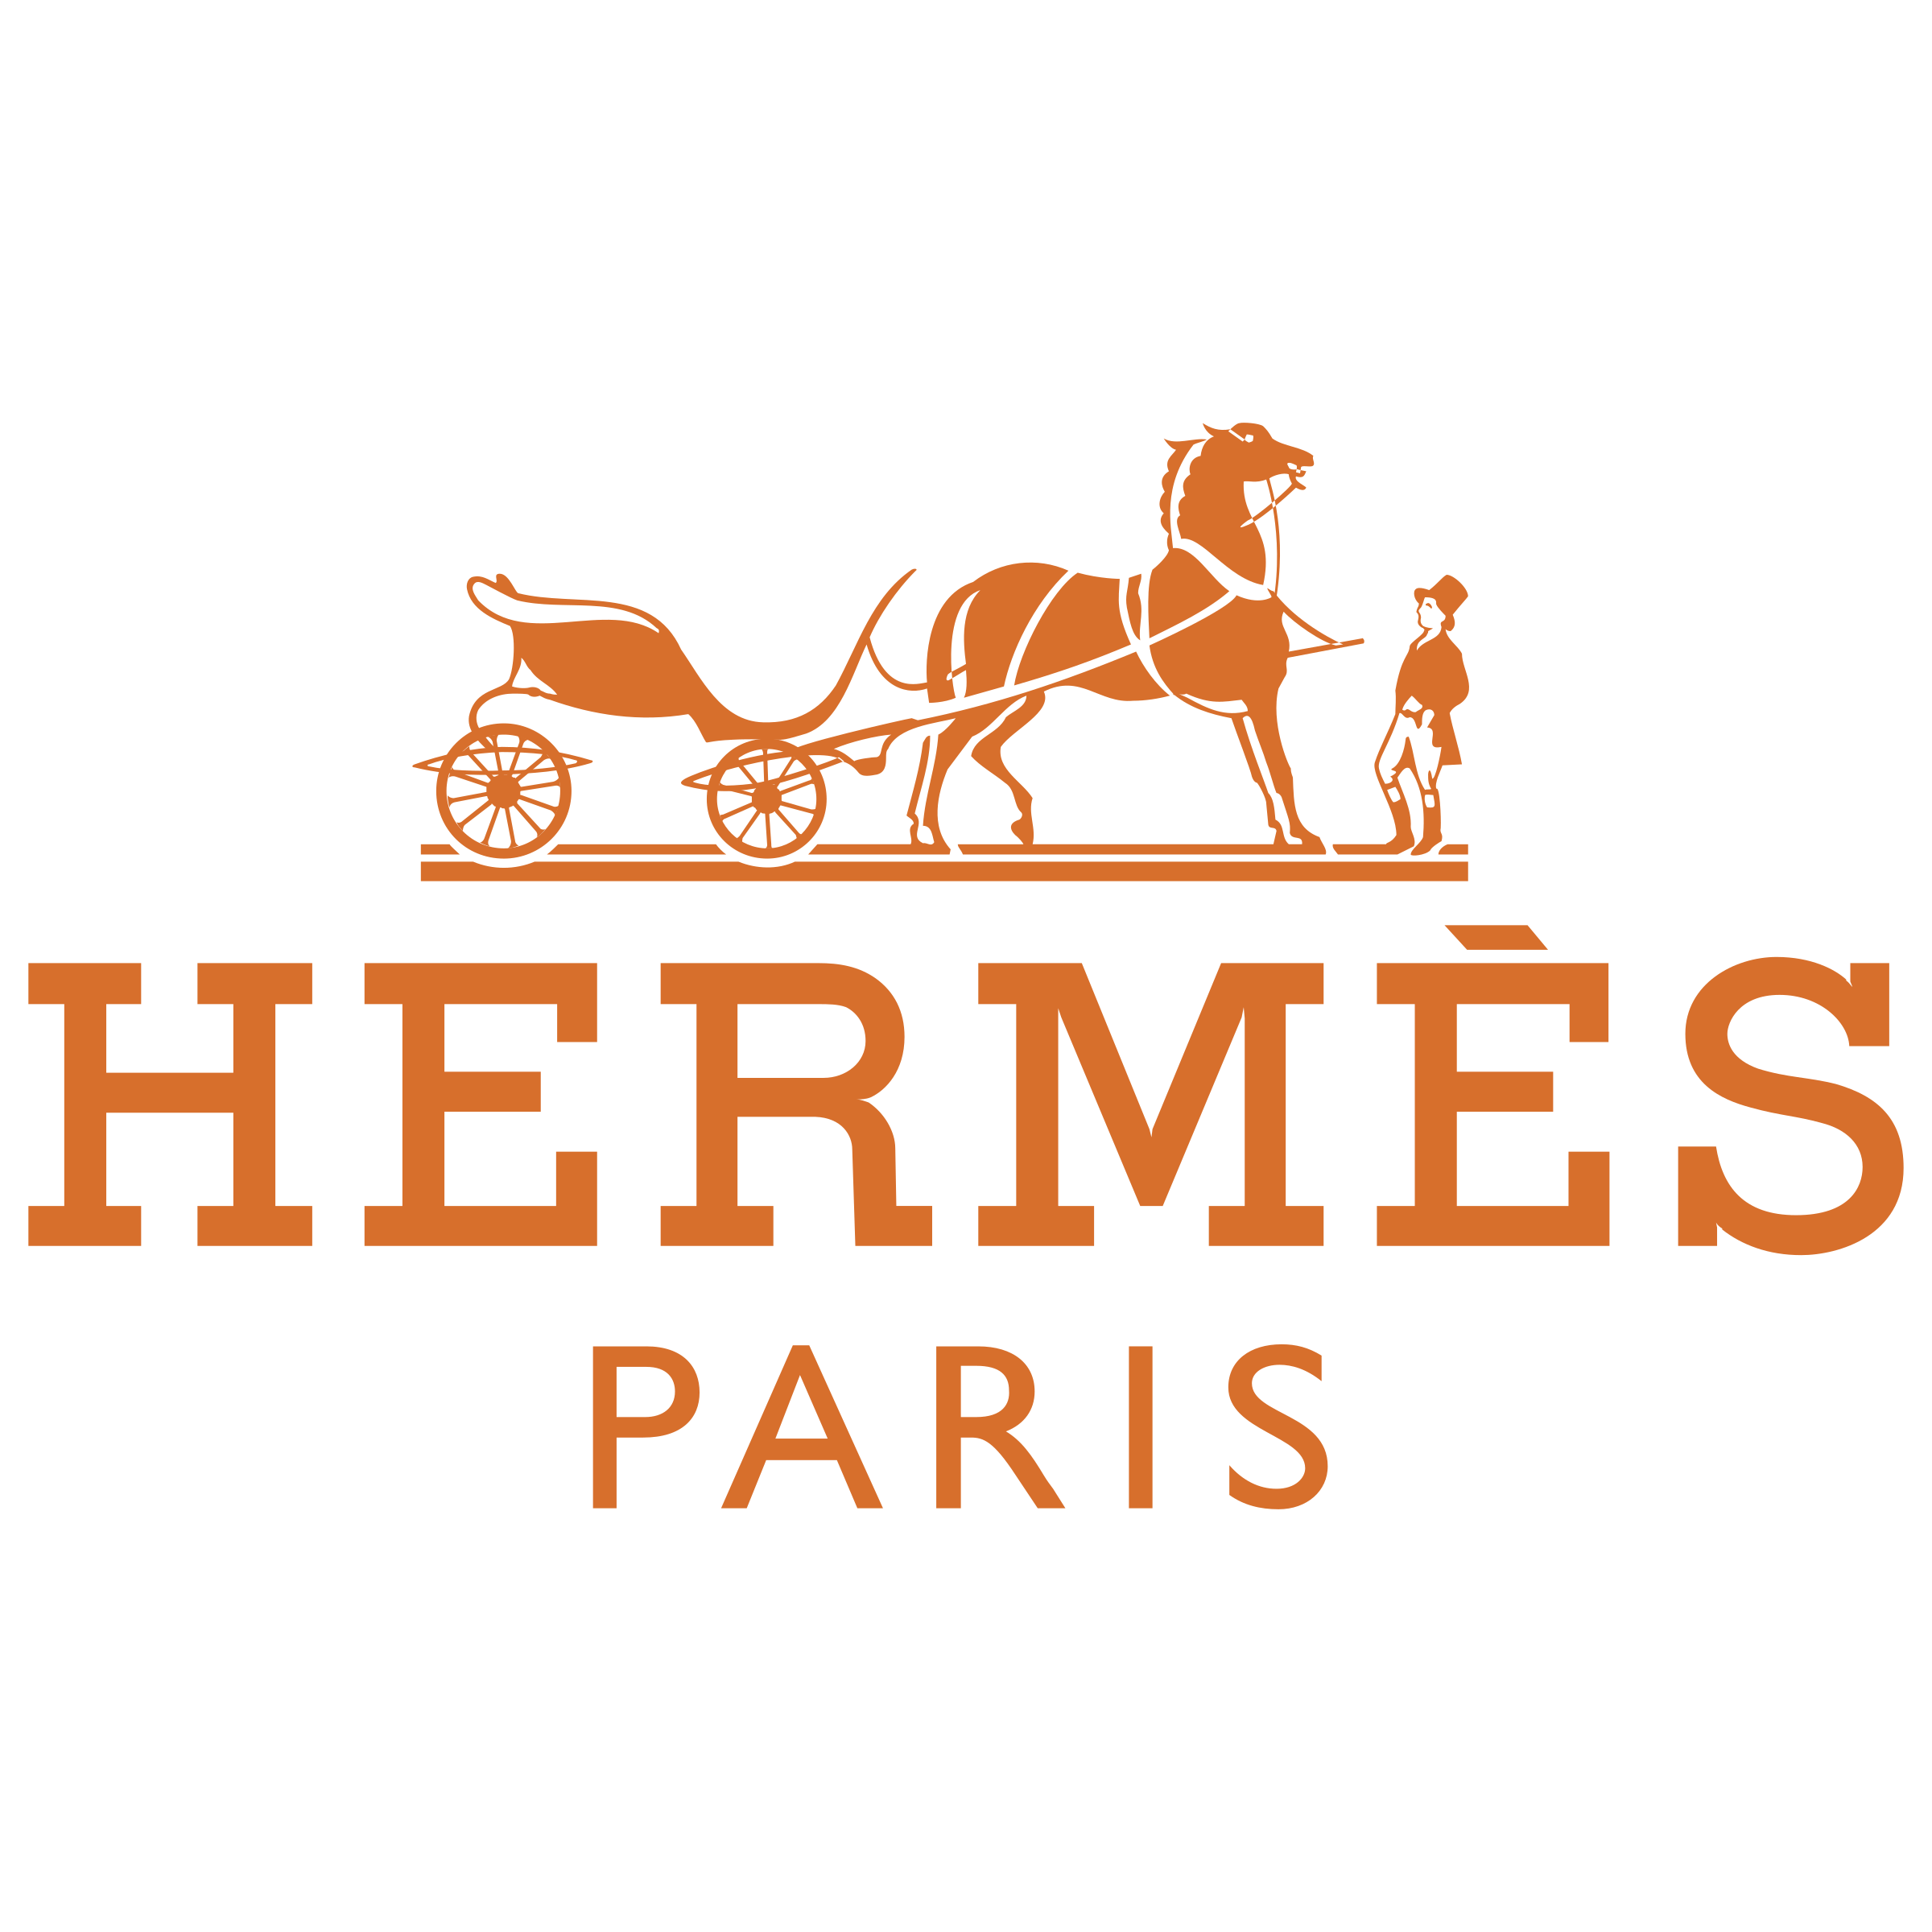 4c6334d5c87 Hermes Transparent Logo - Hermès Logo PNG Transparent & SVG Vector -  Freebie Supply